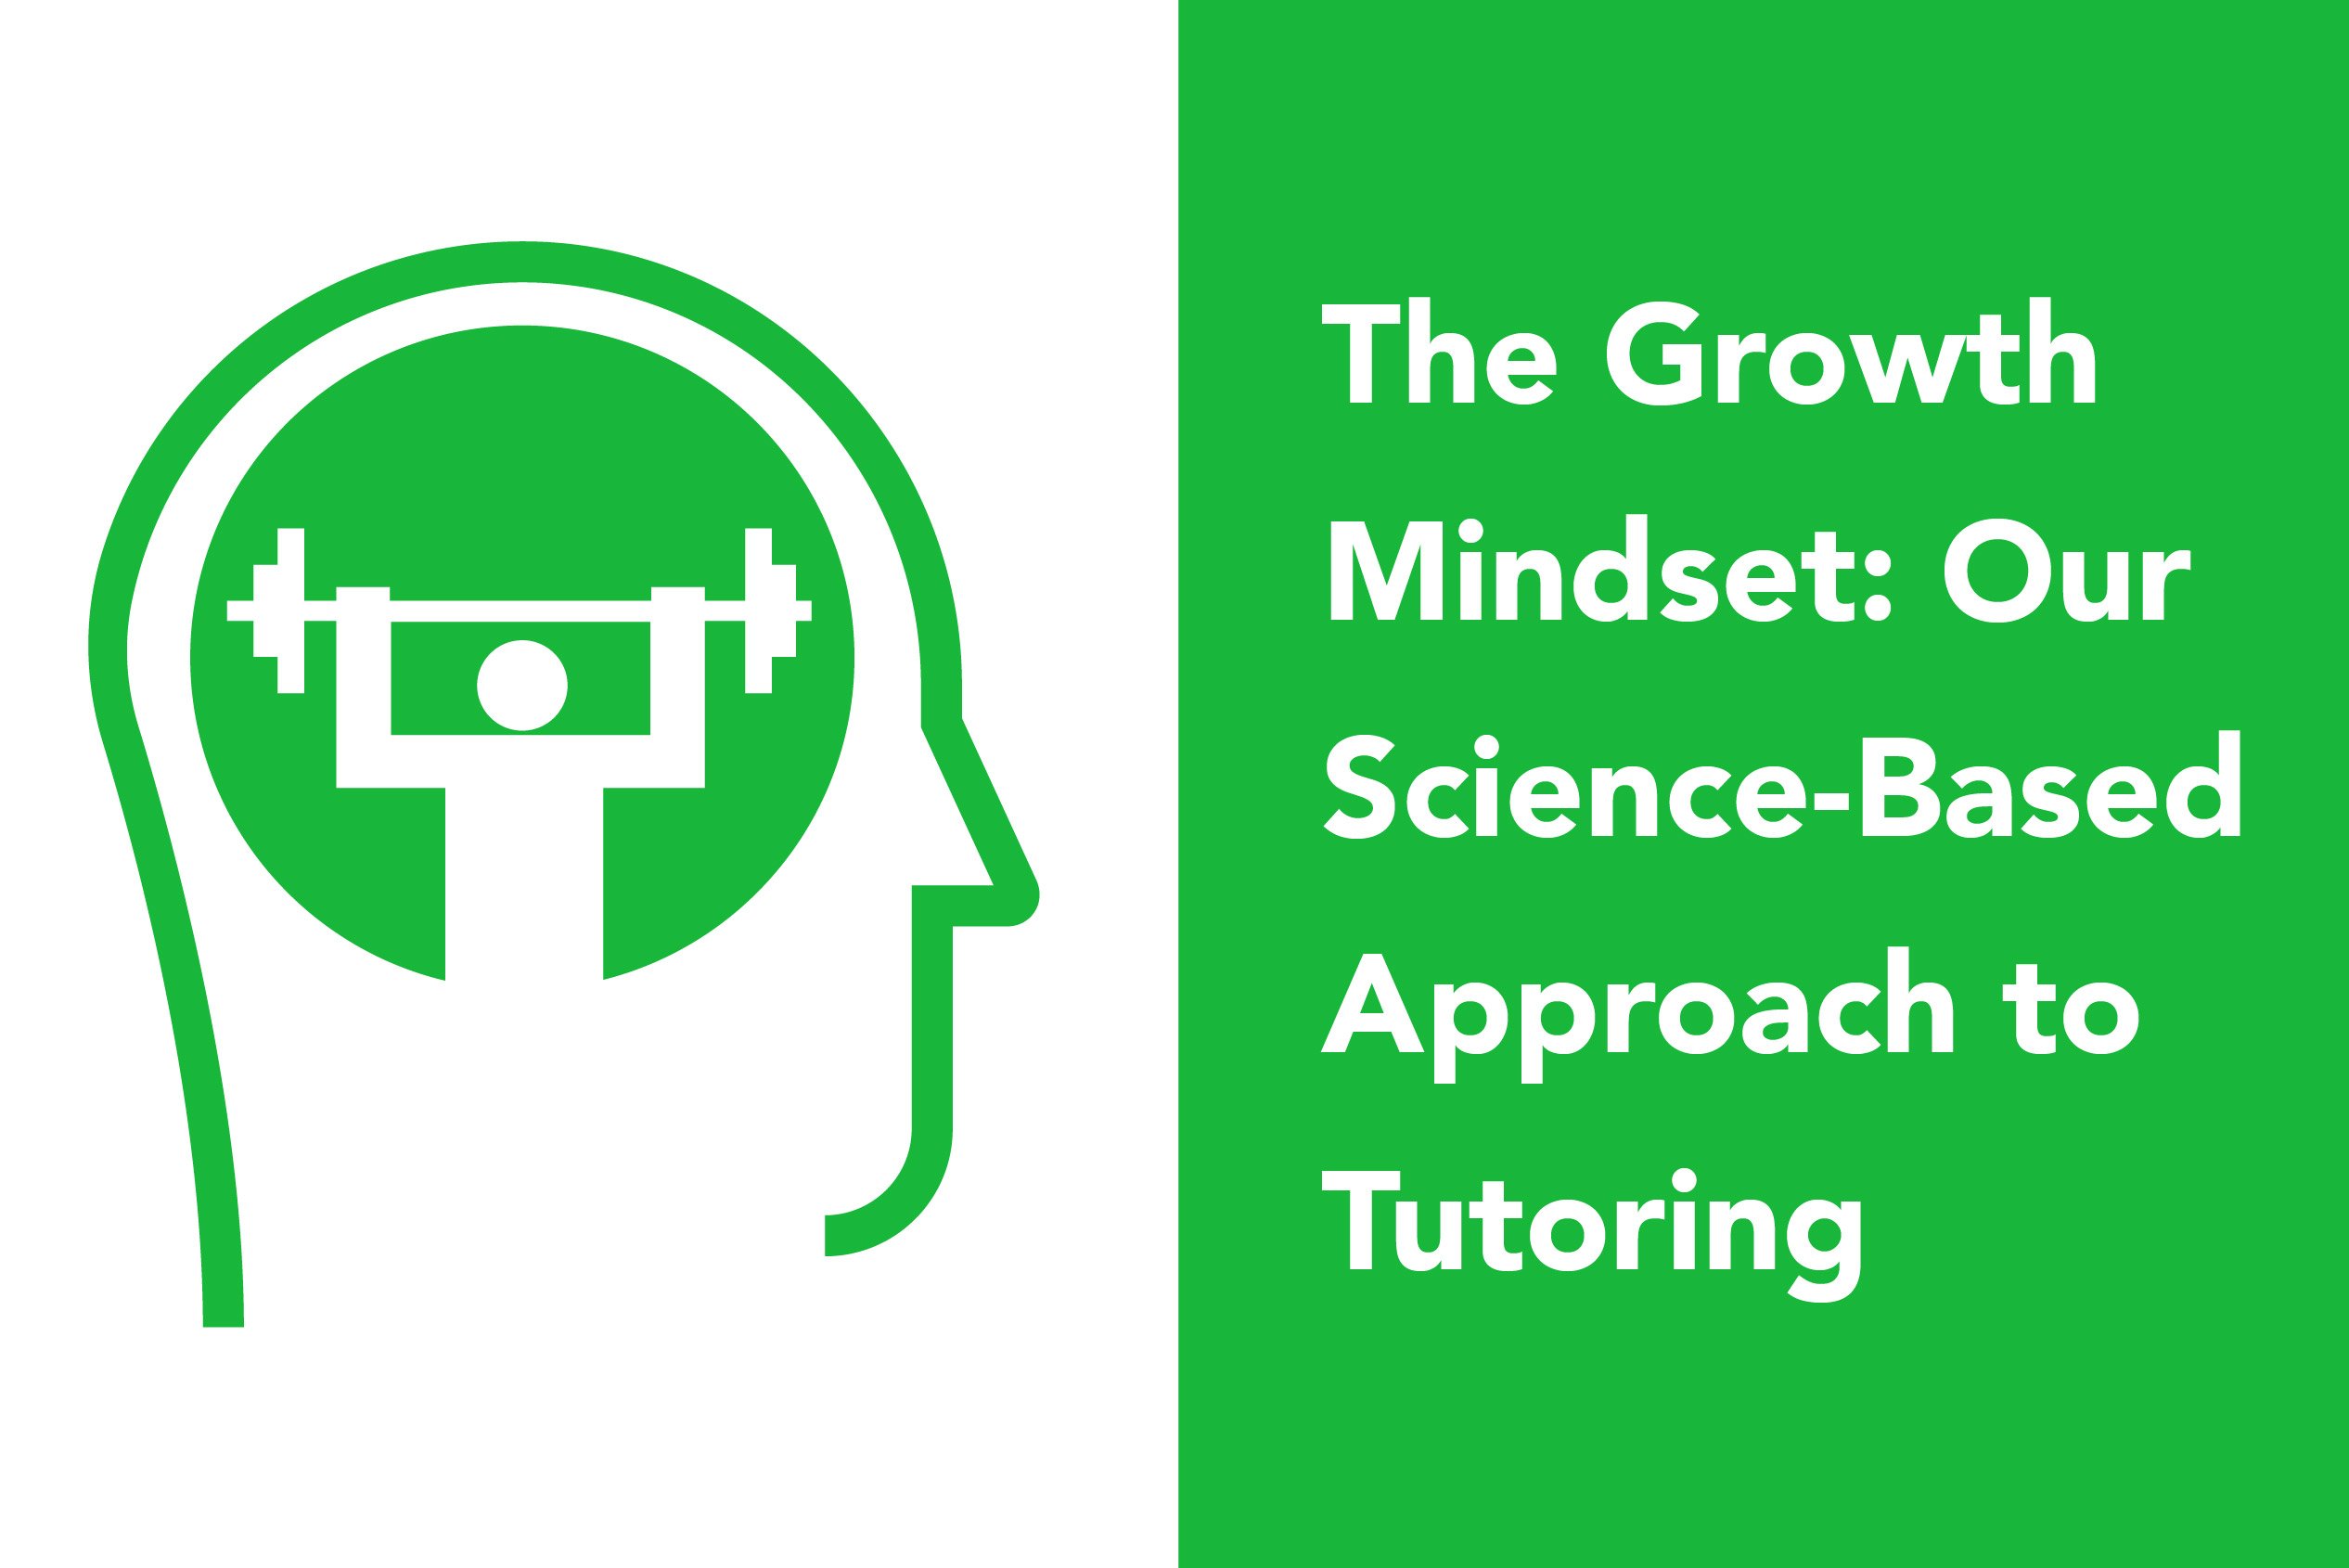 The Growth Mindset: Our Science-Based Approach to Tutoring